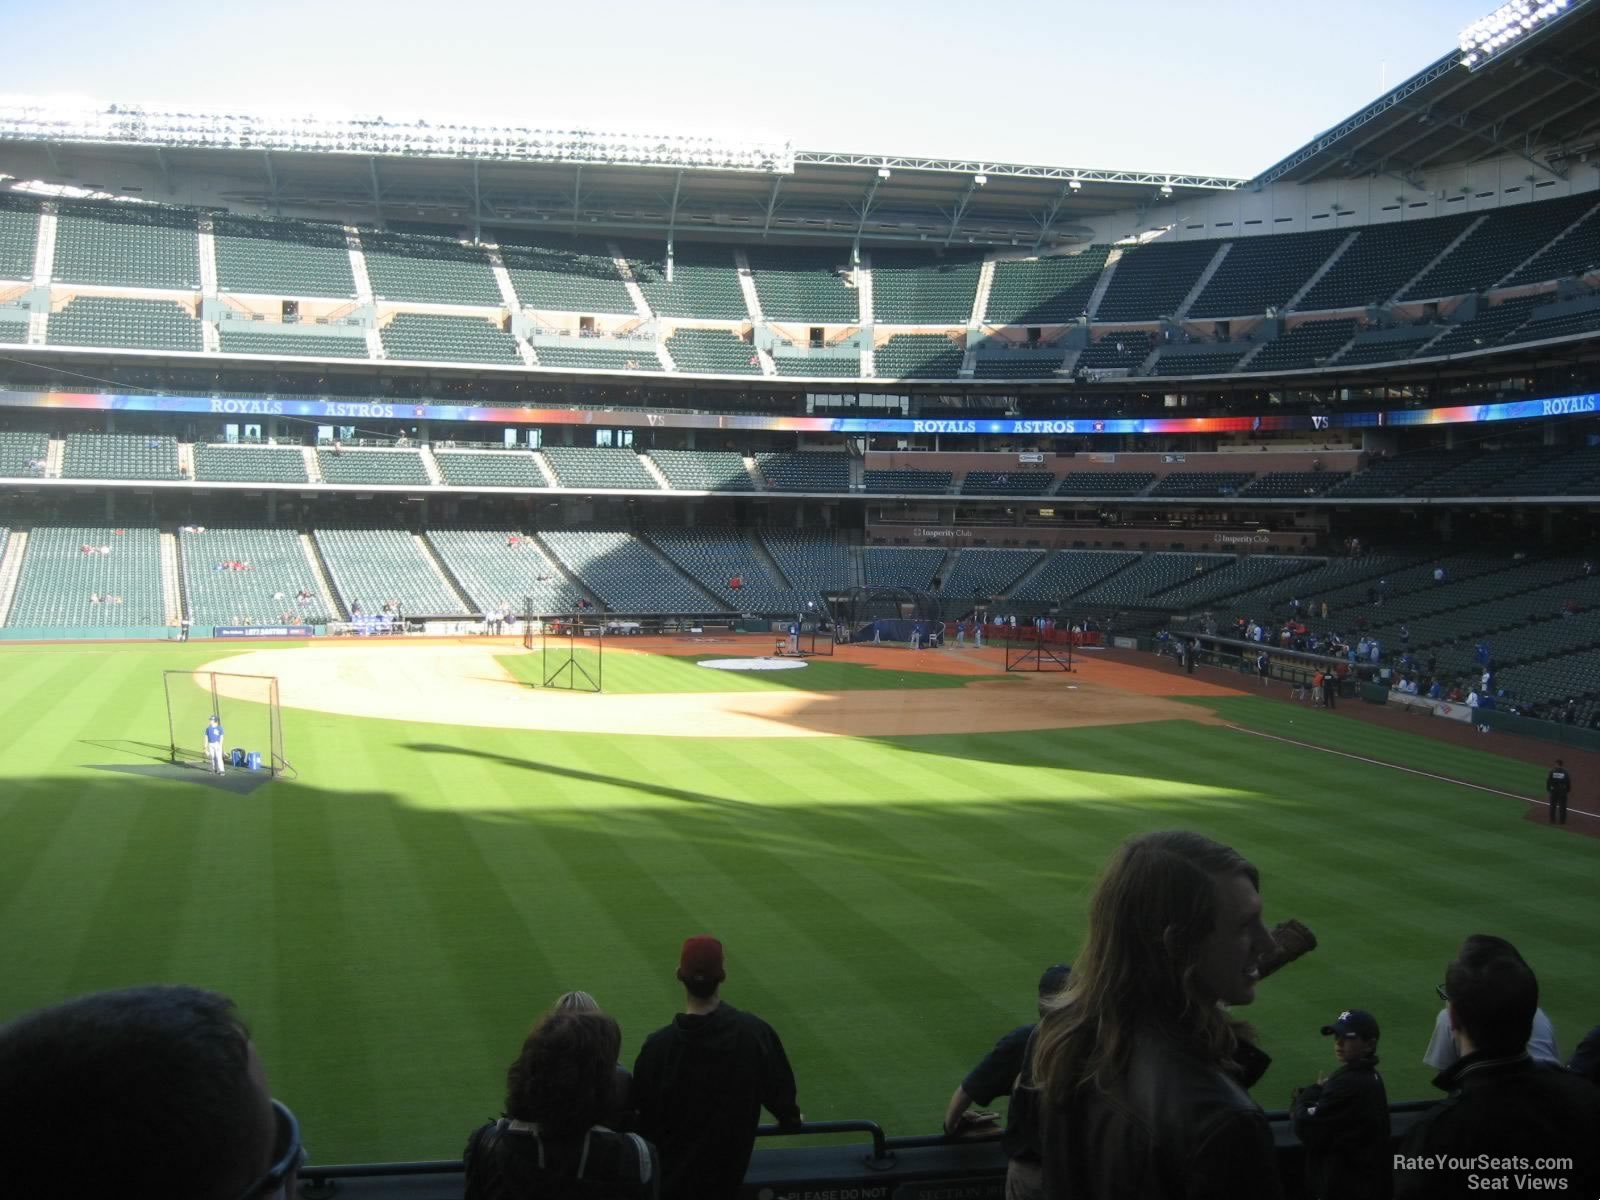 View from Section 100 at Minute Maid Park